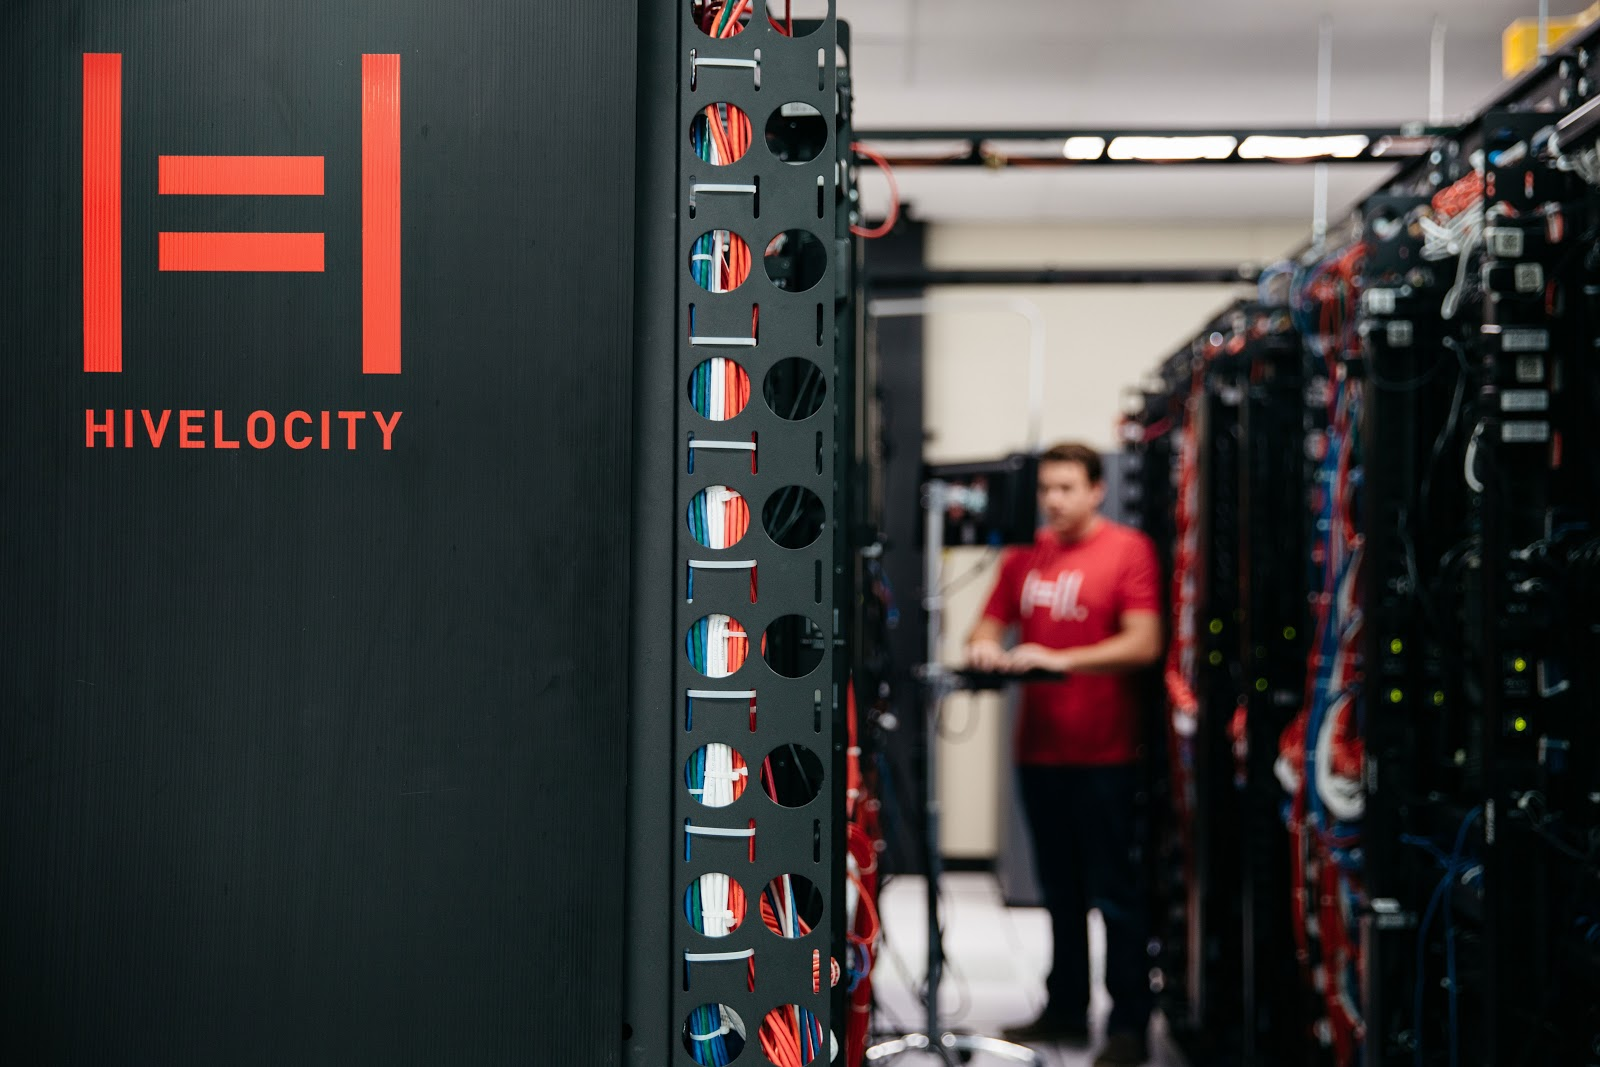 Dedicated Servers at Hivelocity's Tampa Data Center. A Hivelocity employee stands close by, ready to assist as needed.